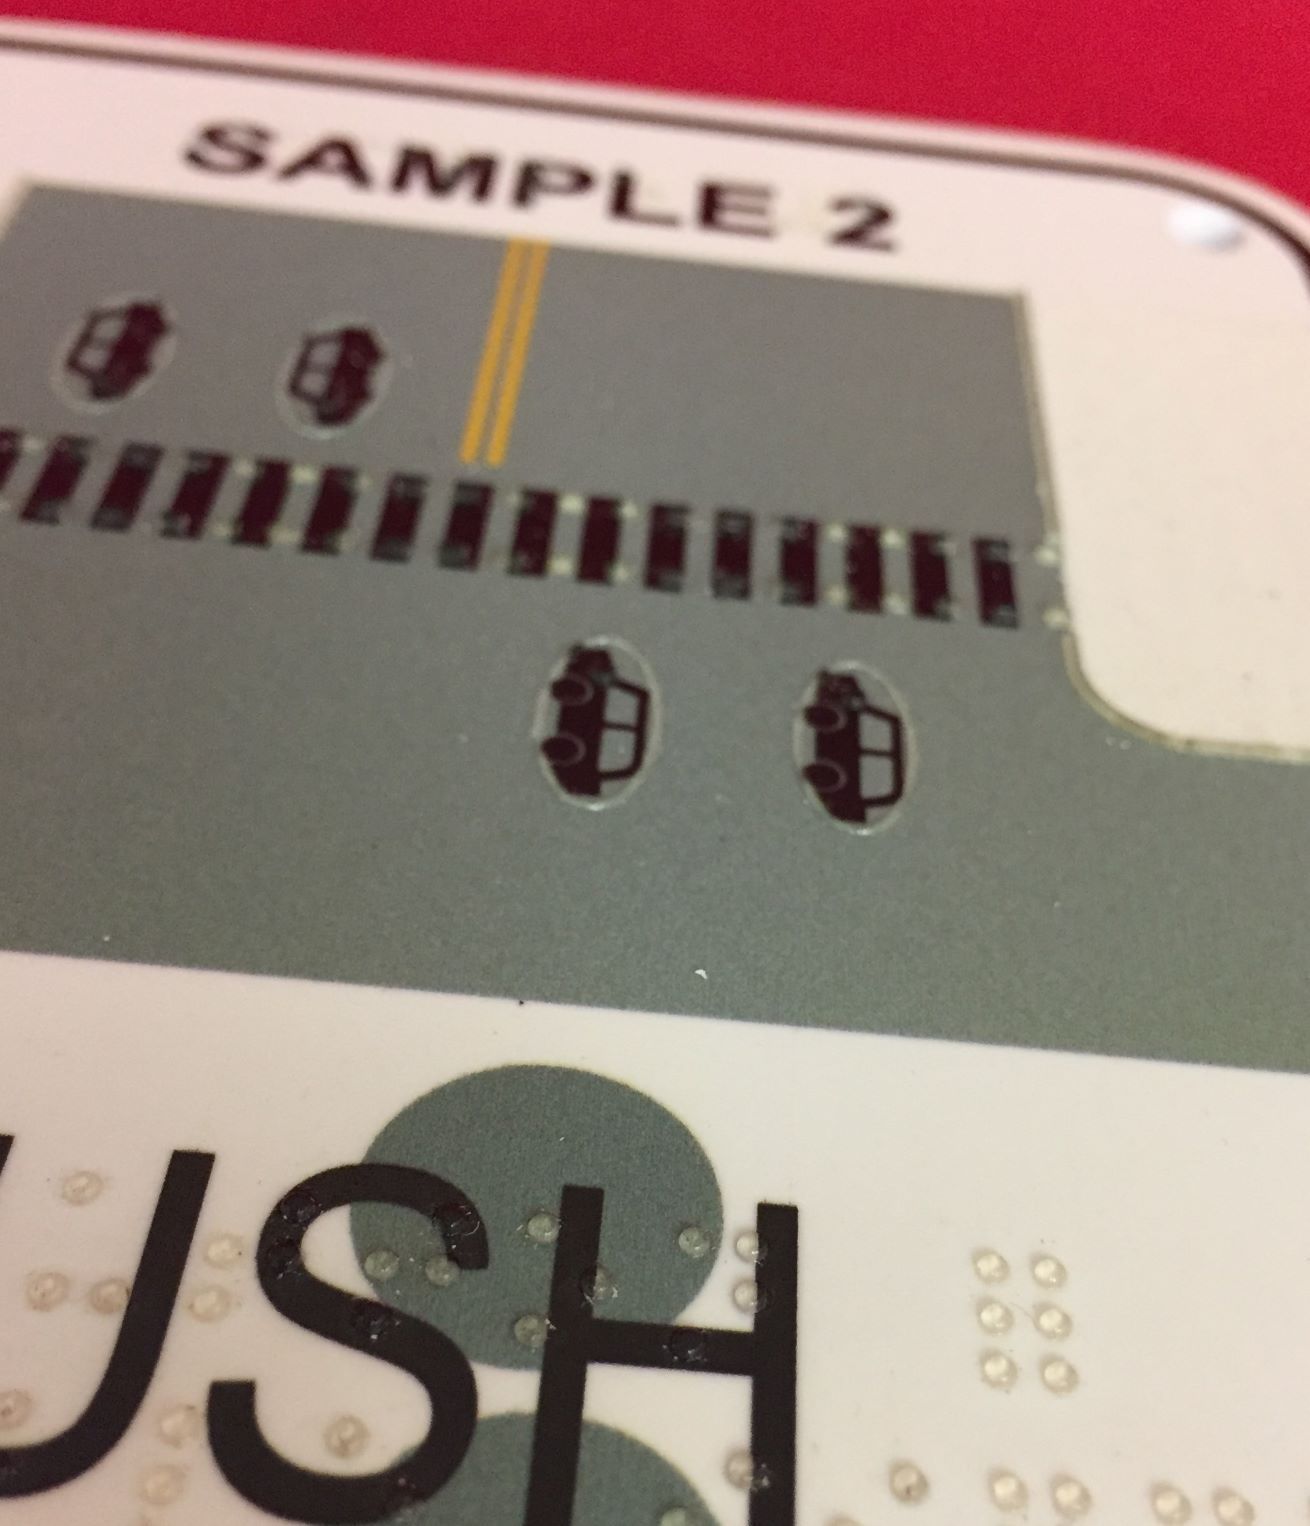 Braille dots and raised tactile graphics on a APS sign